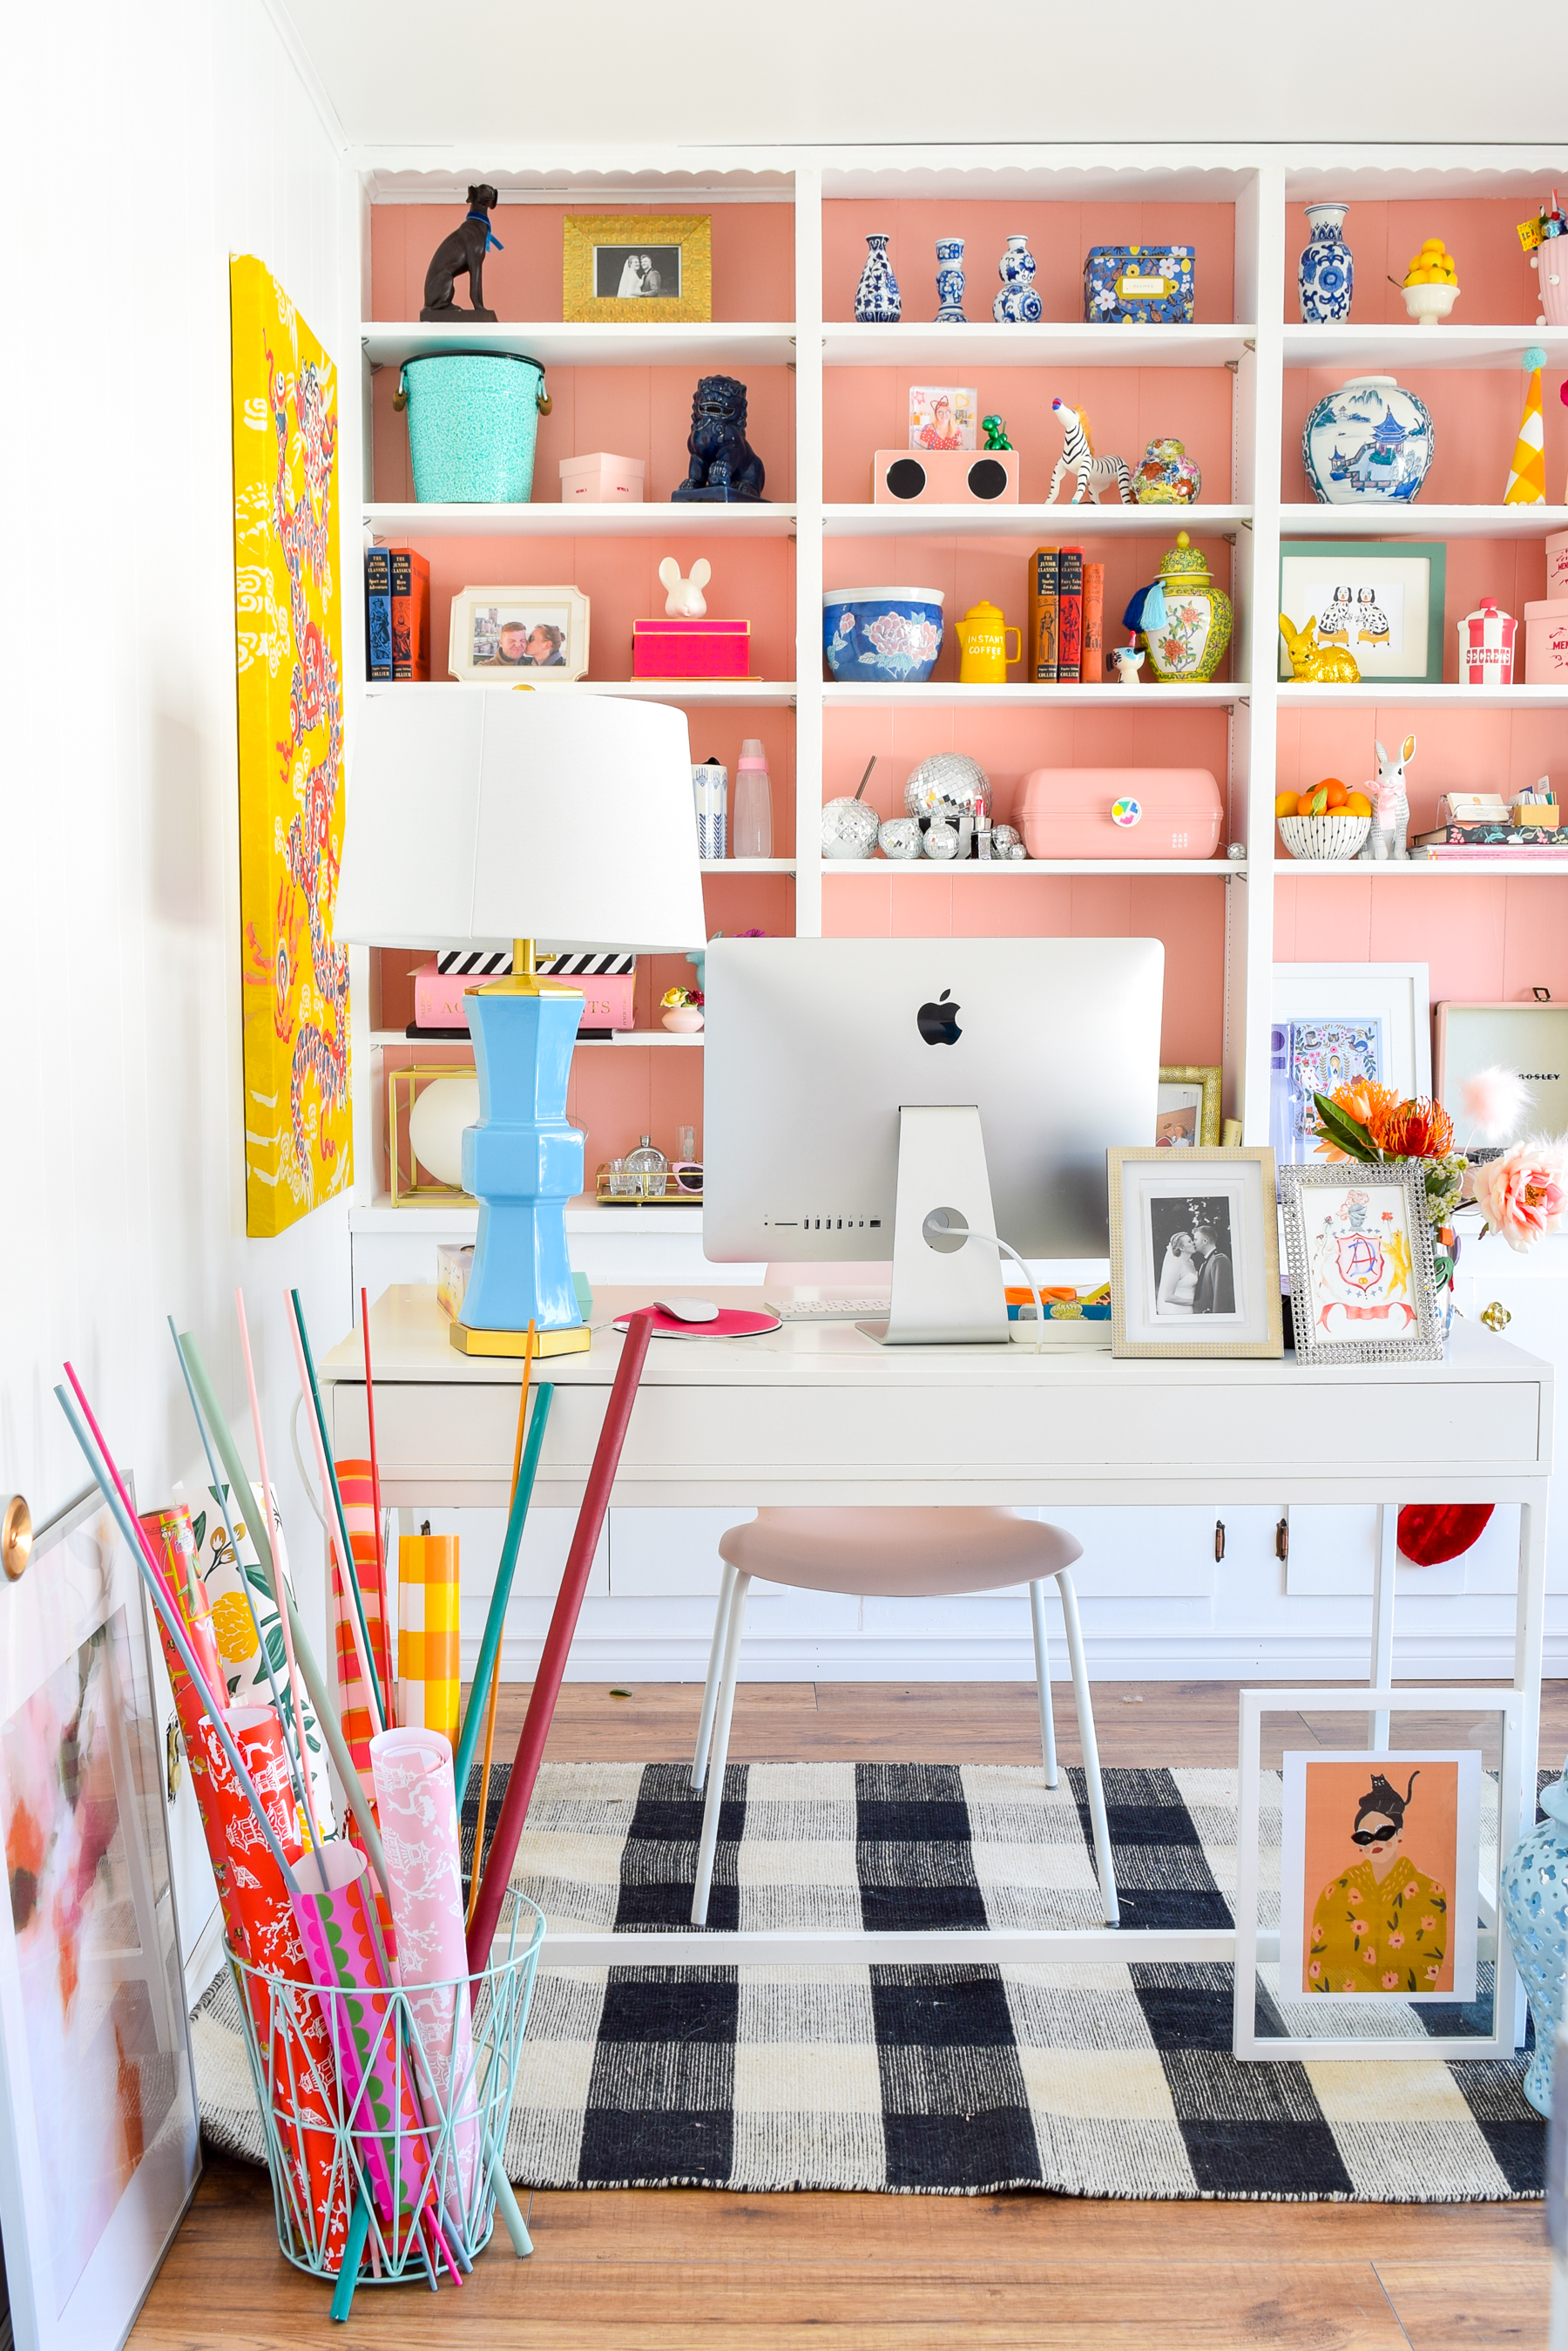 How To Turn A Small Space Into A Dream Craft Room Workspace On A Budget T Moore Home Design Diy And Affordable Decorating Ideas